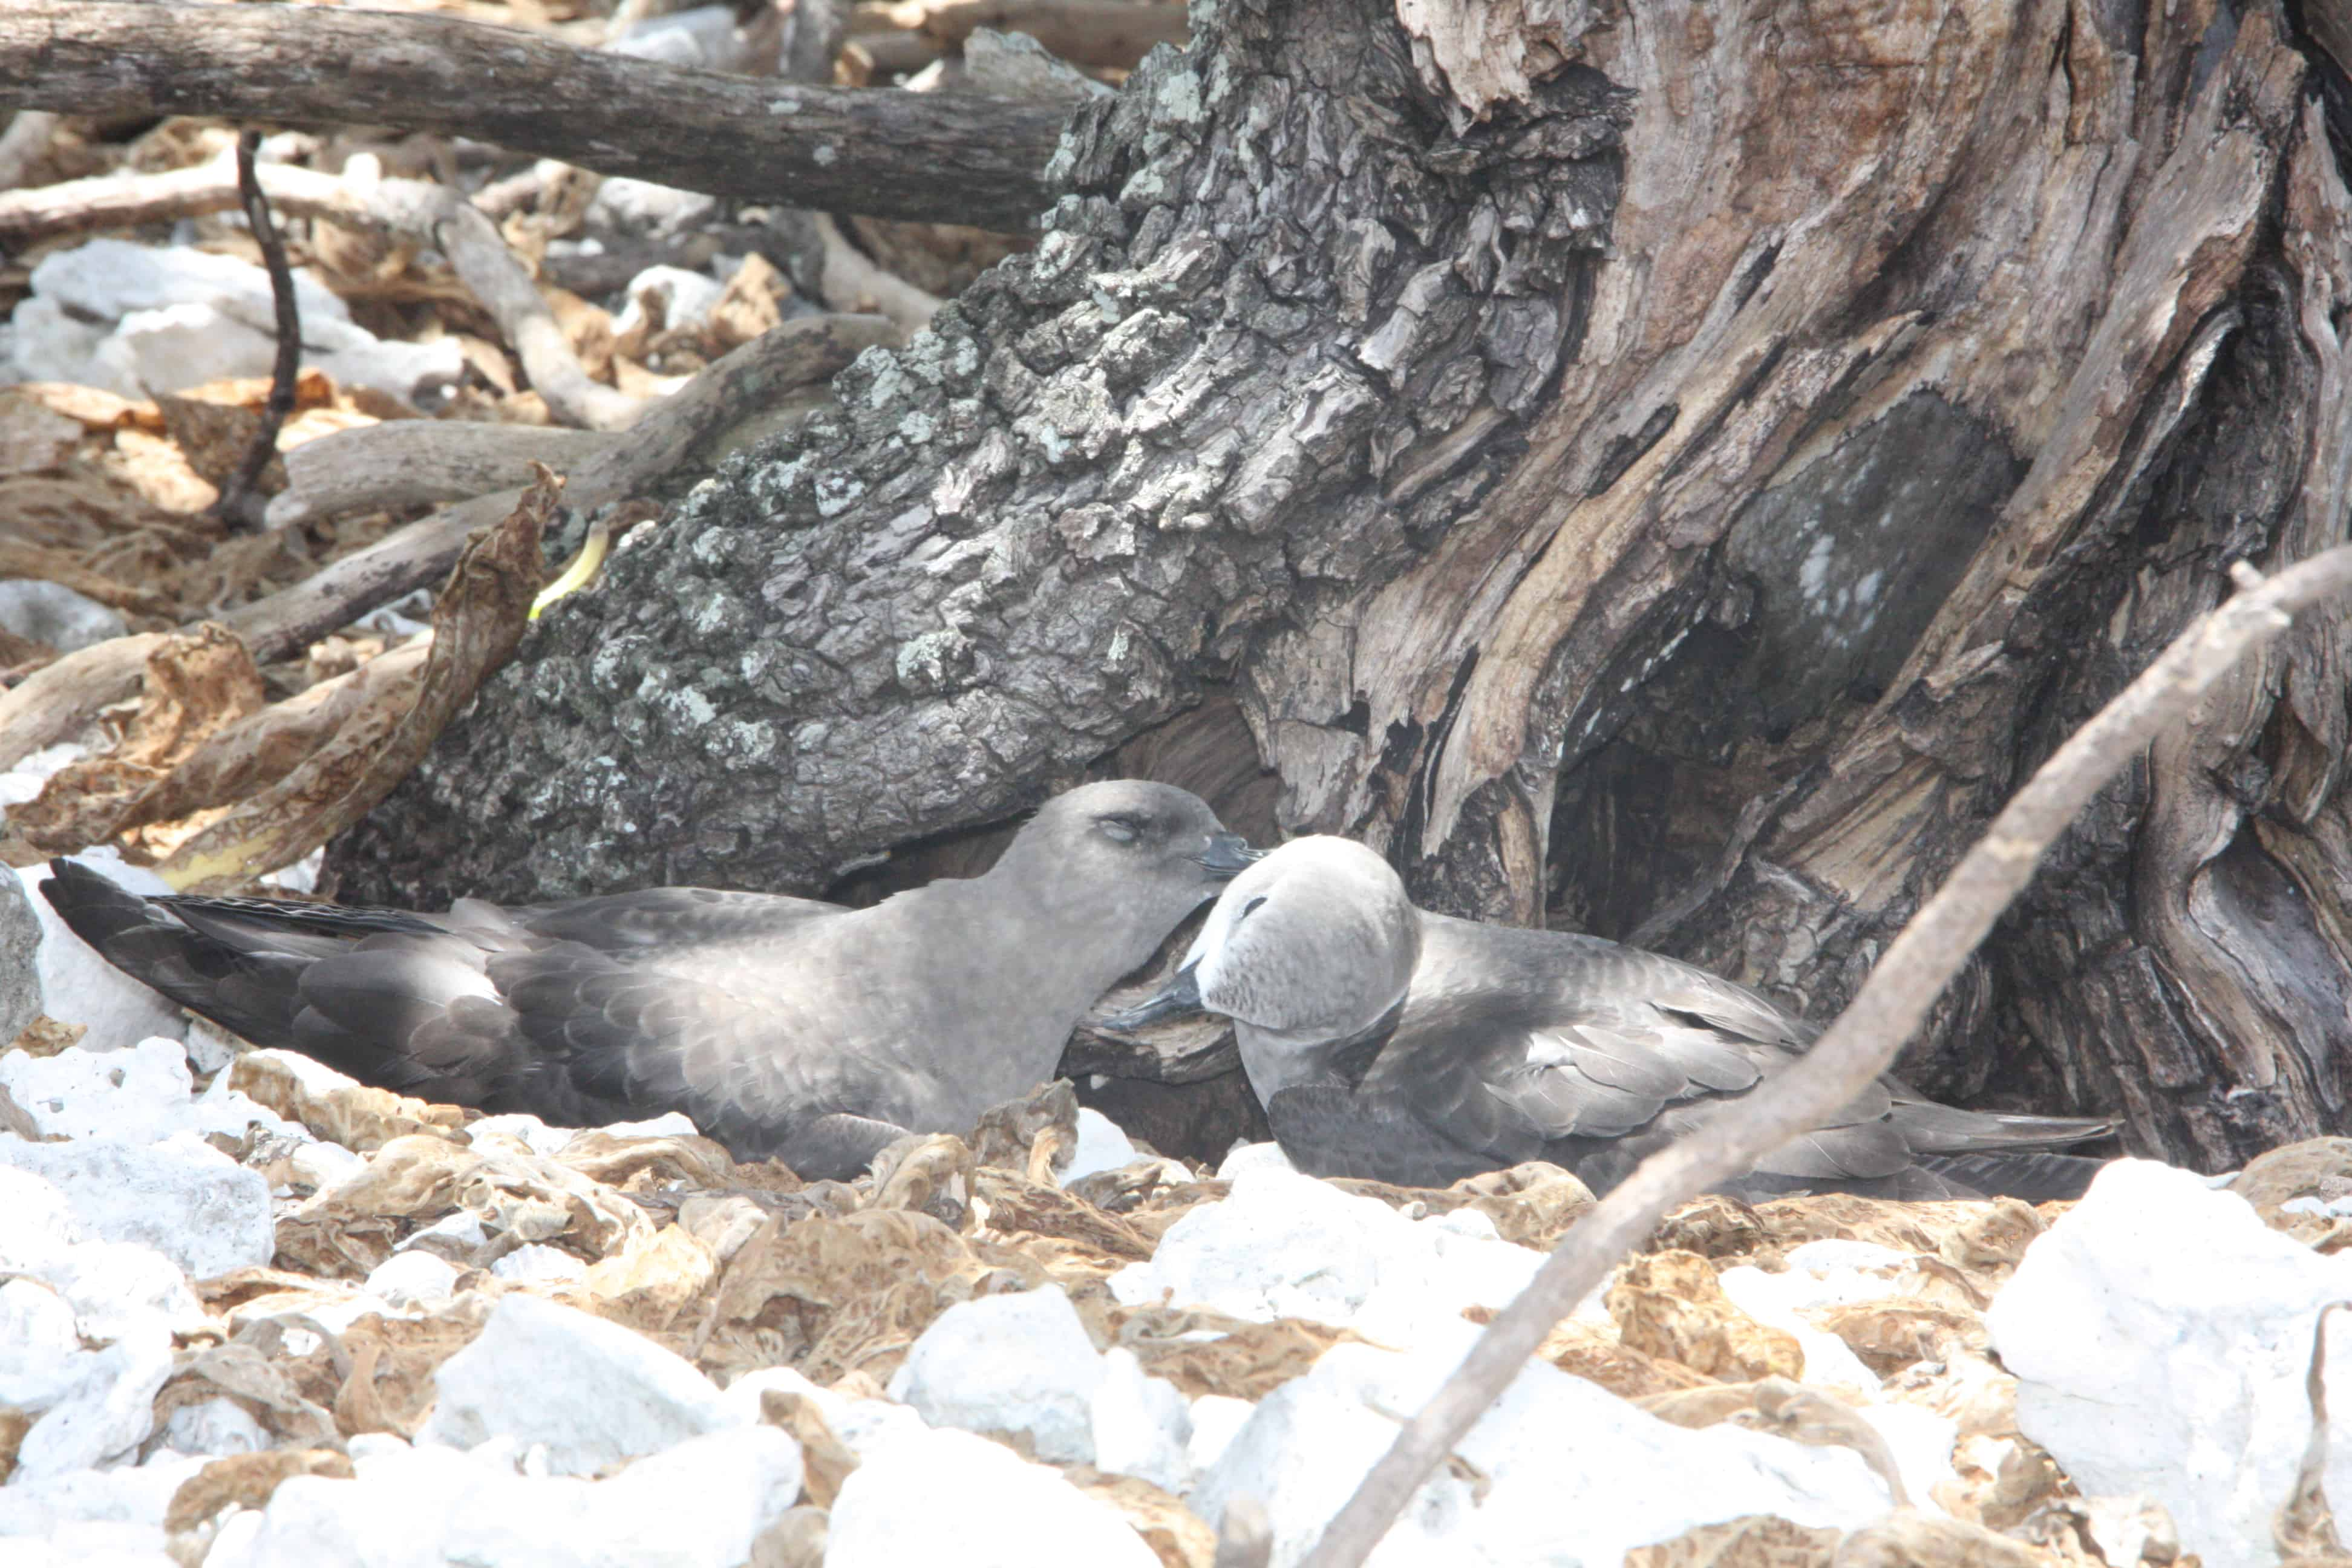 A pair of Kermadec petrels on nesting site at Ducie Island; Copyright: Dr Mike Pienkowski